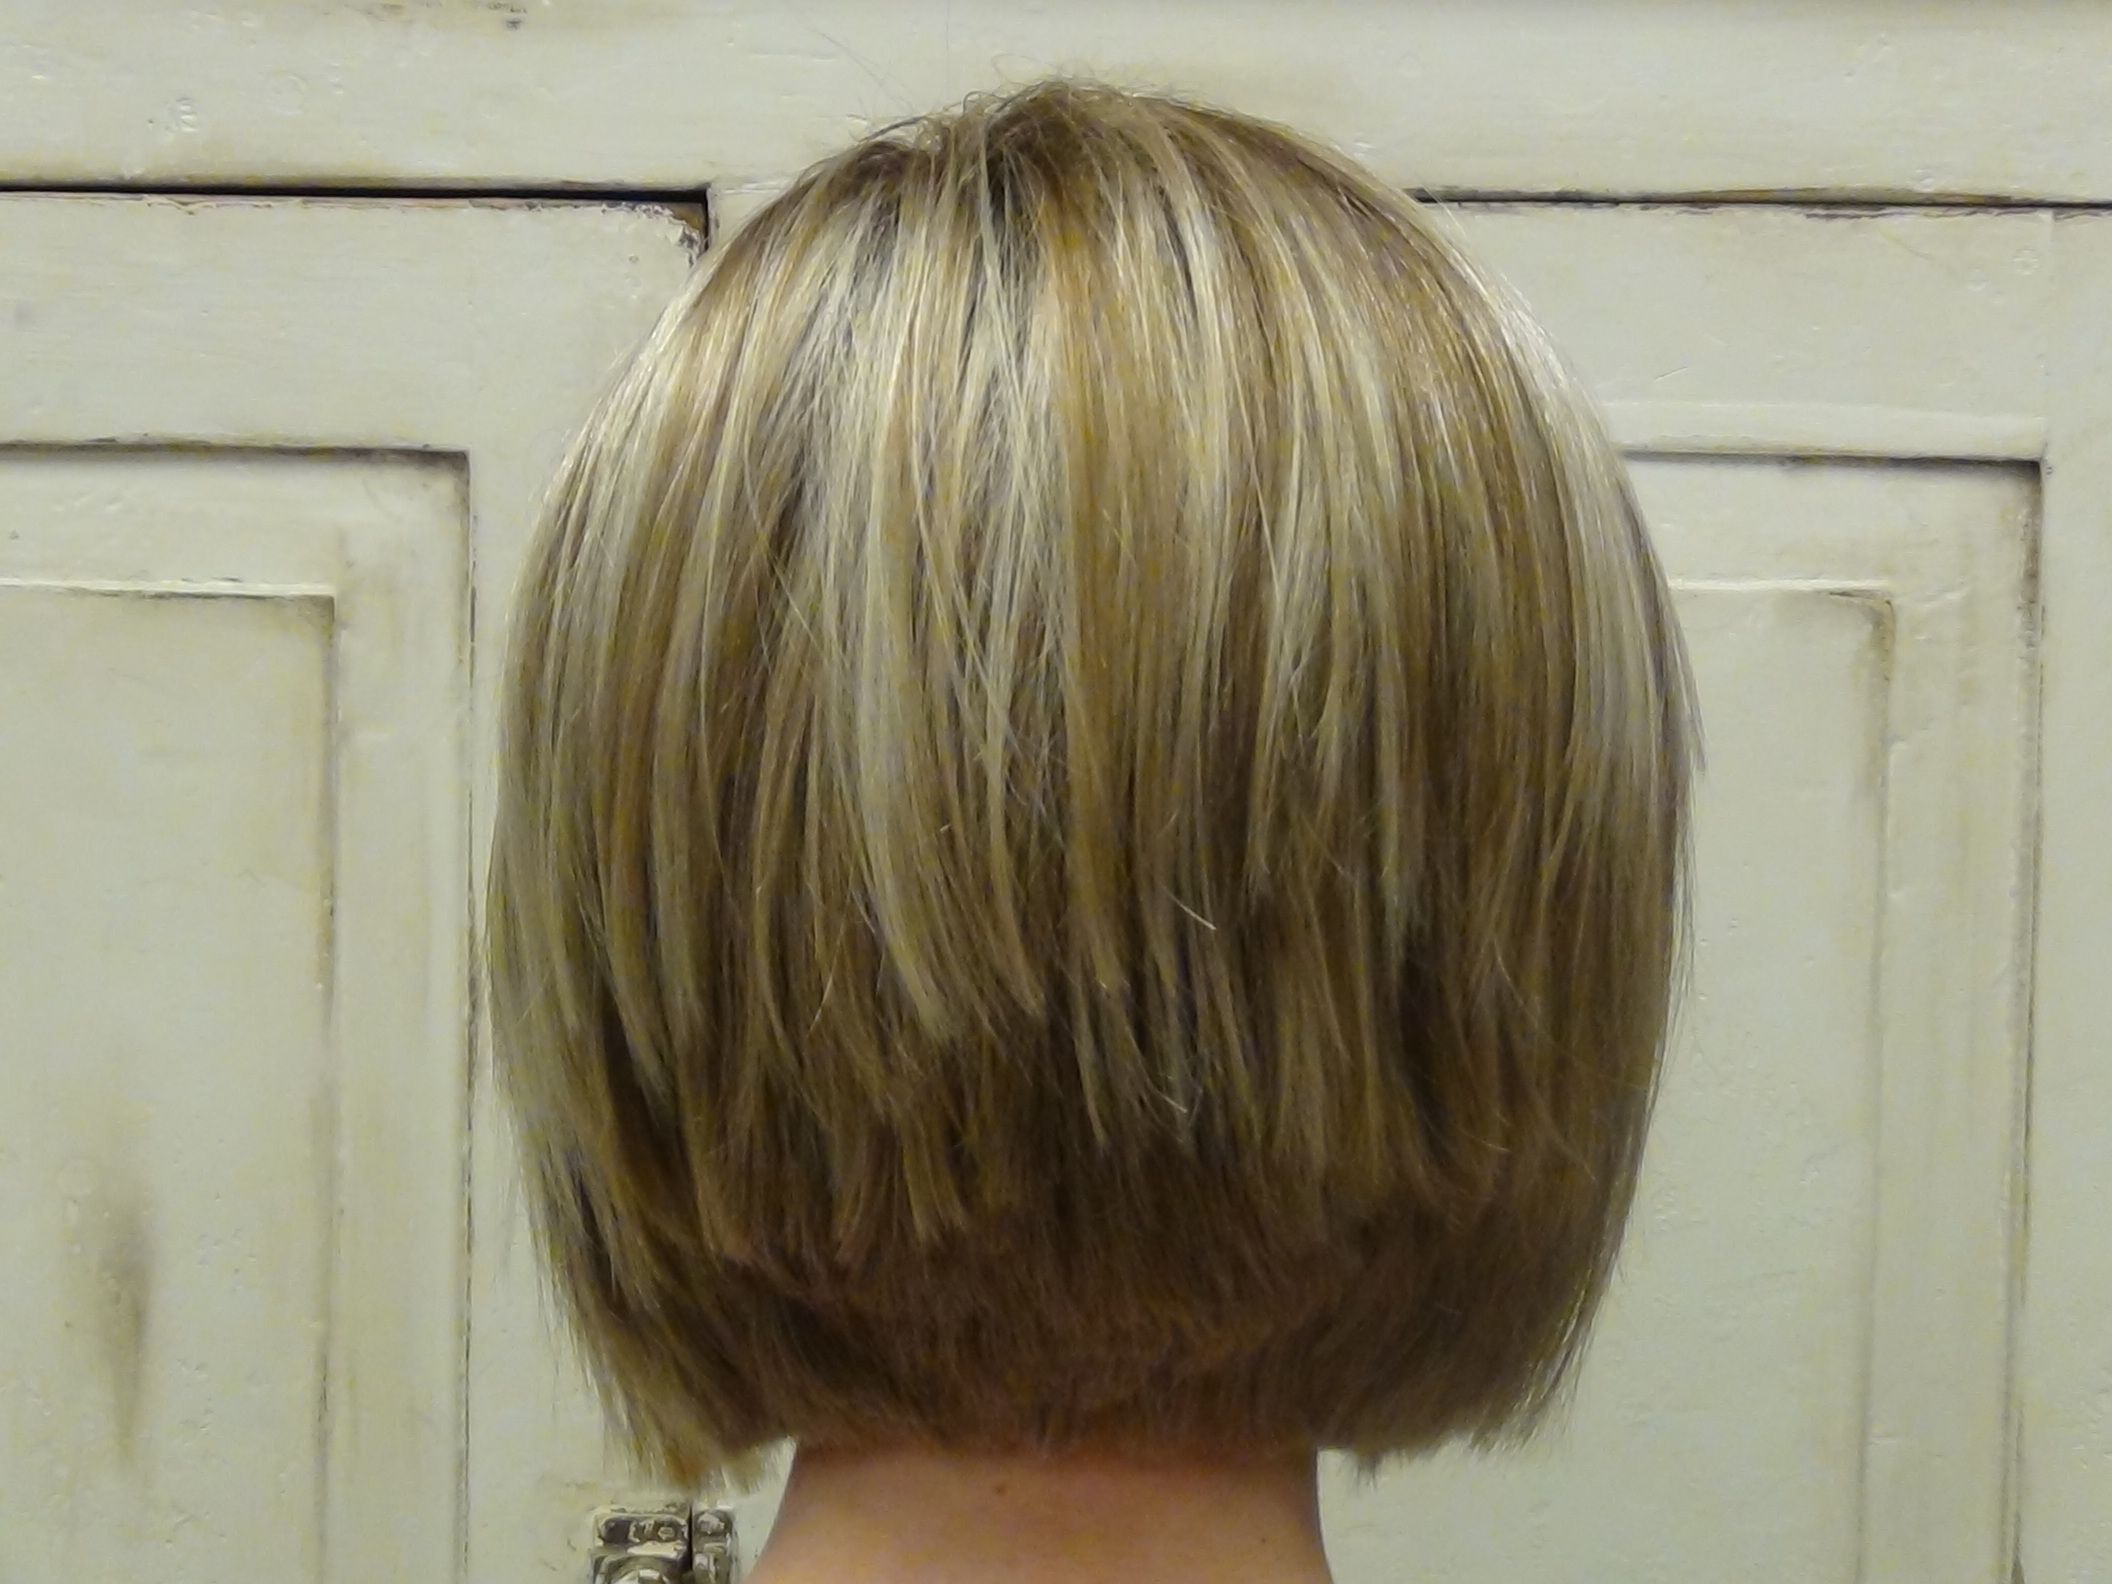 Bob haircuts back view - Stacked Bob Hairstyles Back View Beautiful Short Stacked Hairstyle For A Beautiful Person Boys